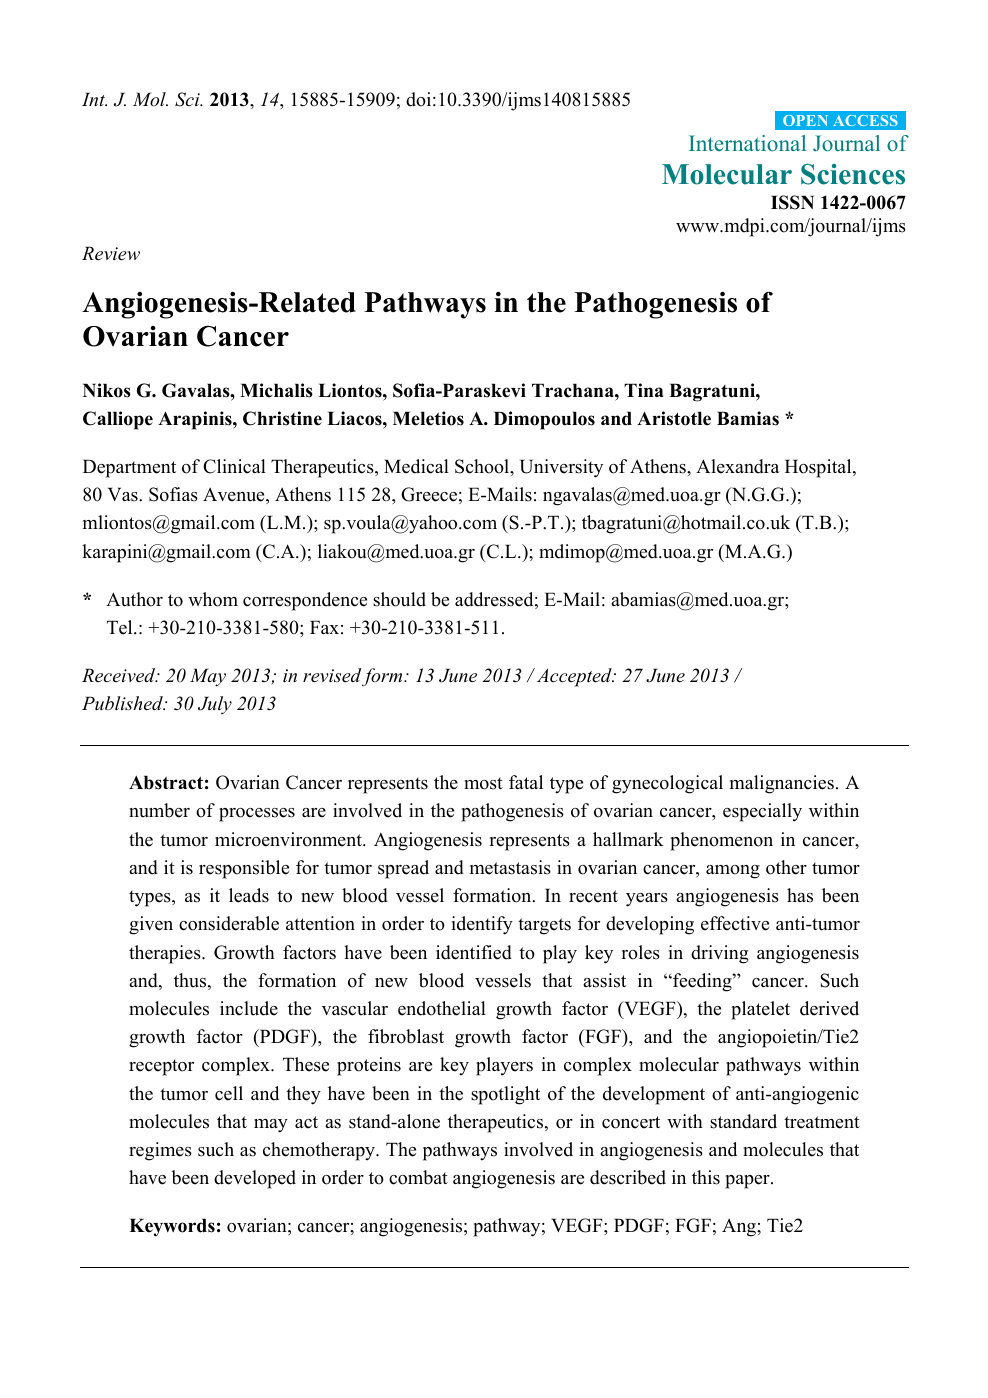 Angiogenesis Related Pathways In The Pathogenesis Of Ovarian Cancer Topic Of Research Paper In Biological Sciences Download Scholarly Article Pdf And Read For Free On Cyberleninka Open Science Hub